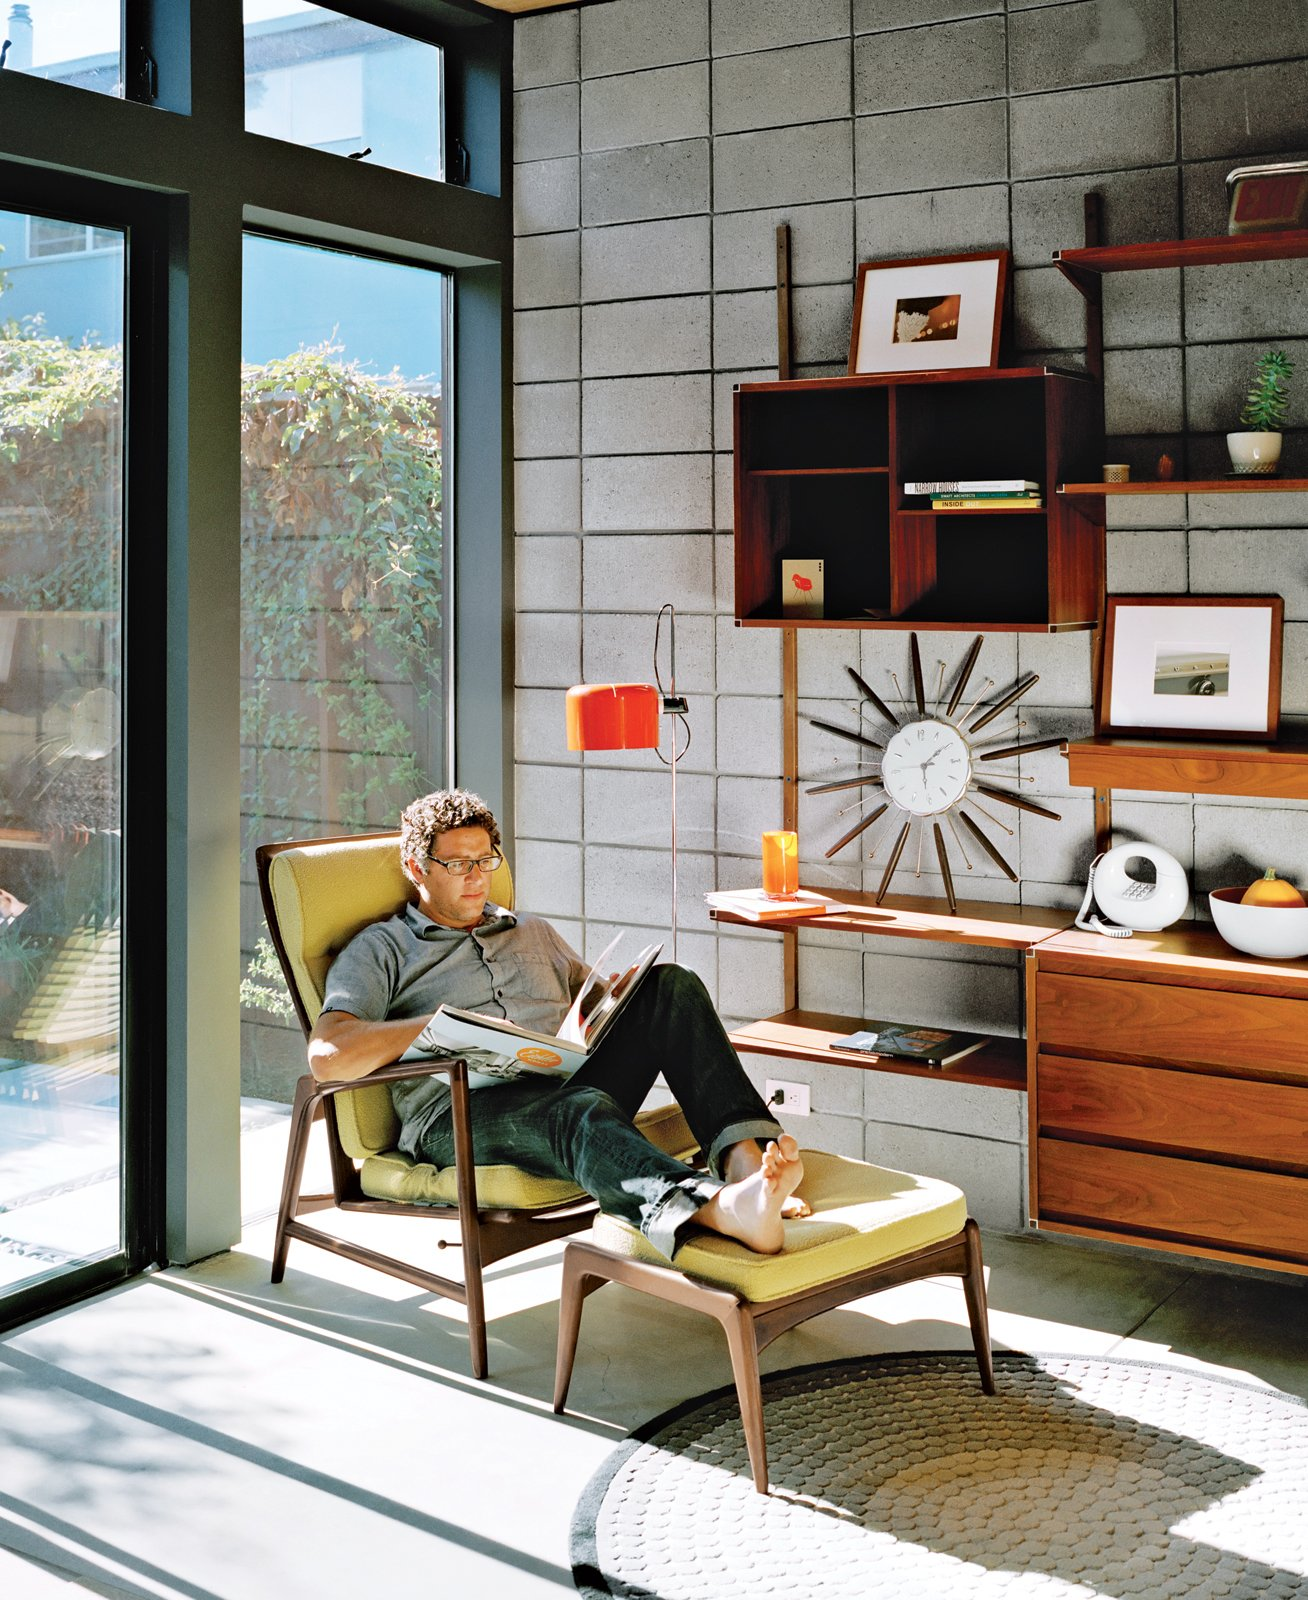 #midcenturymodern #lounge #chair #livingrooms #light   Tips for Creating a Comfortable Living Room by Drew McGukin from Consolas